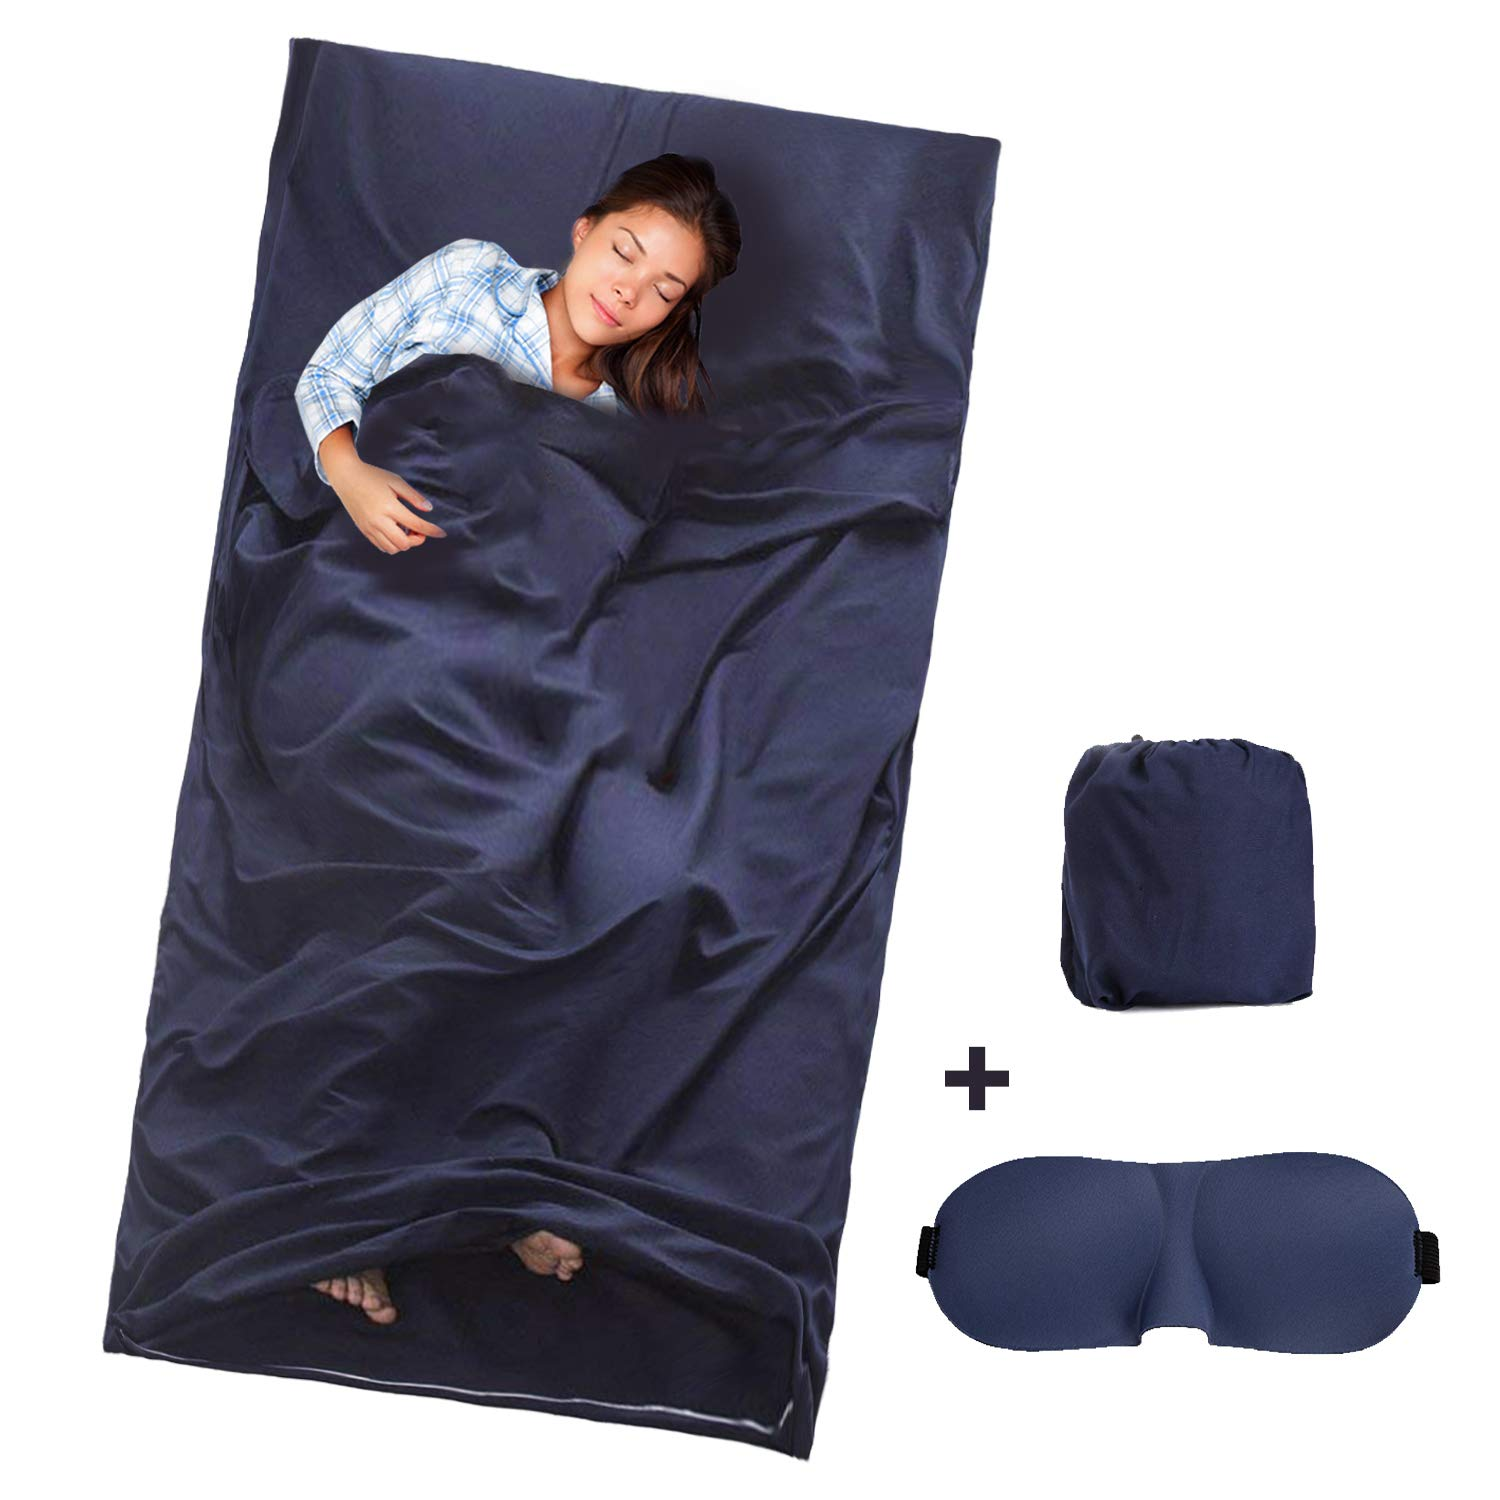 Sleeping Bag Liner Portable Sleep Sack Lightweight Travel Camping Sheet with 3D Eye Cover Sleeping Mask for Hotel Hiking Picnics GUSTYLE